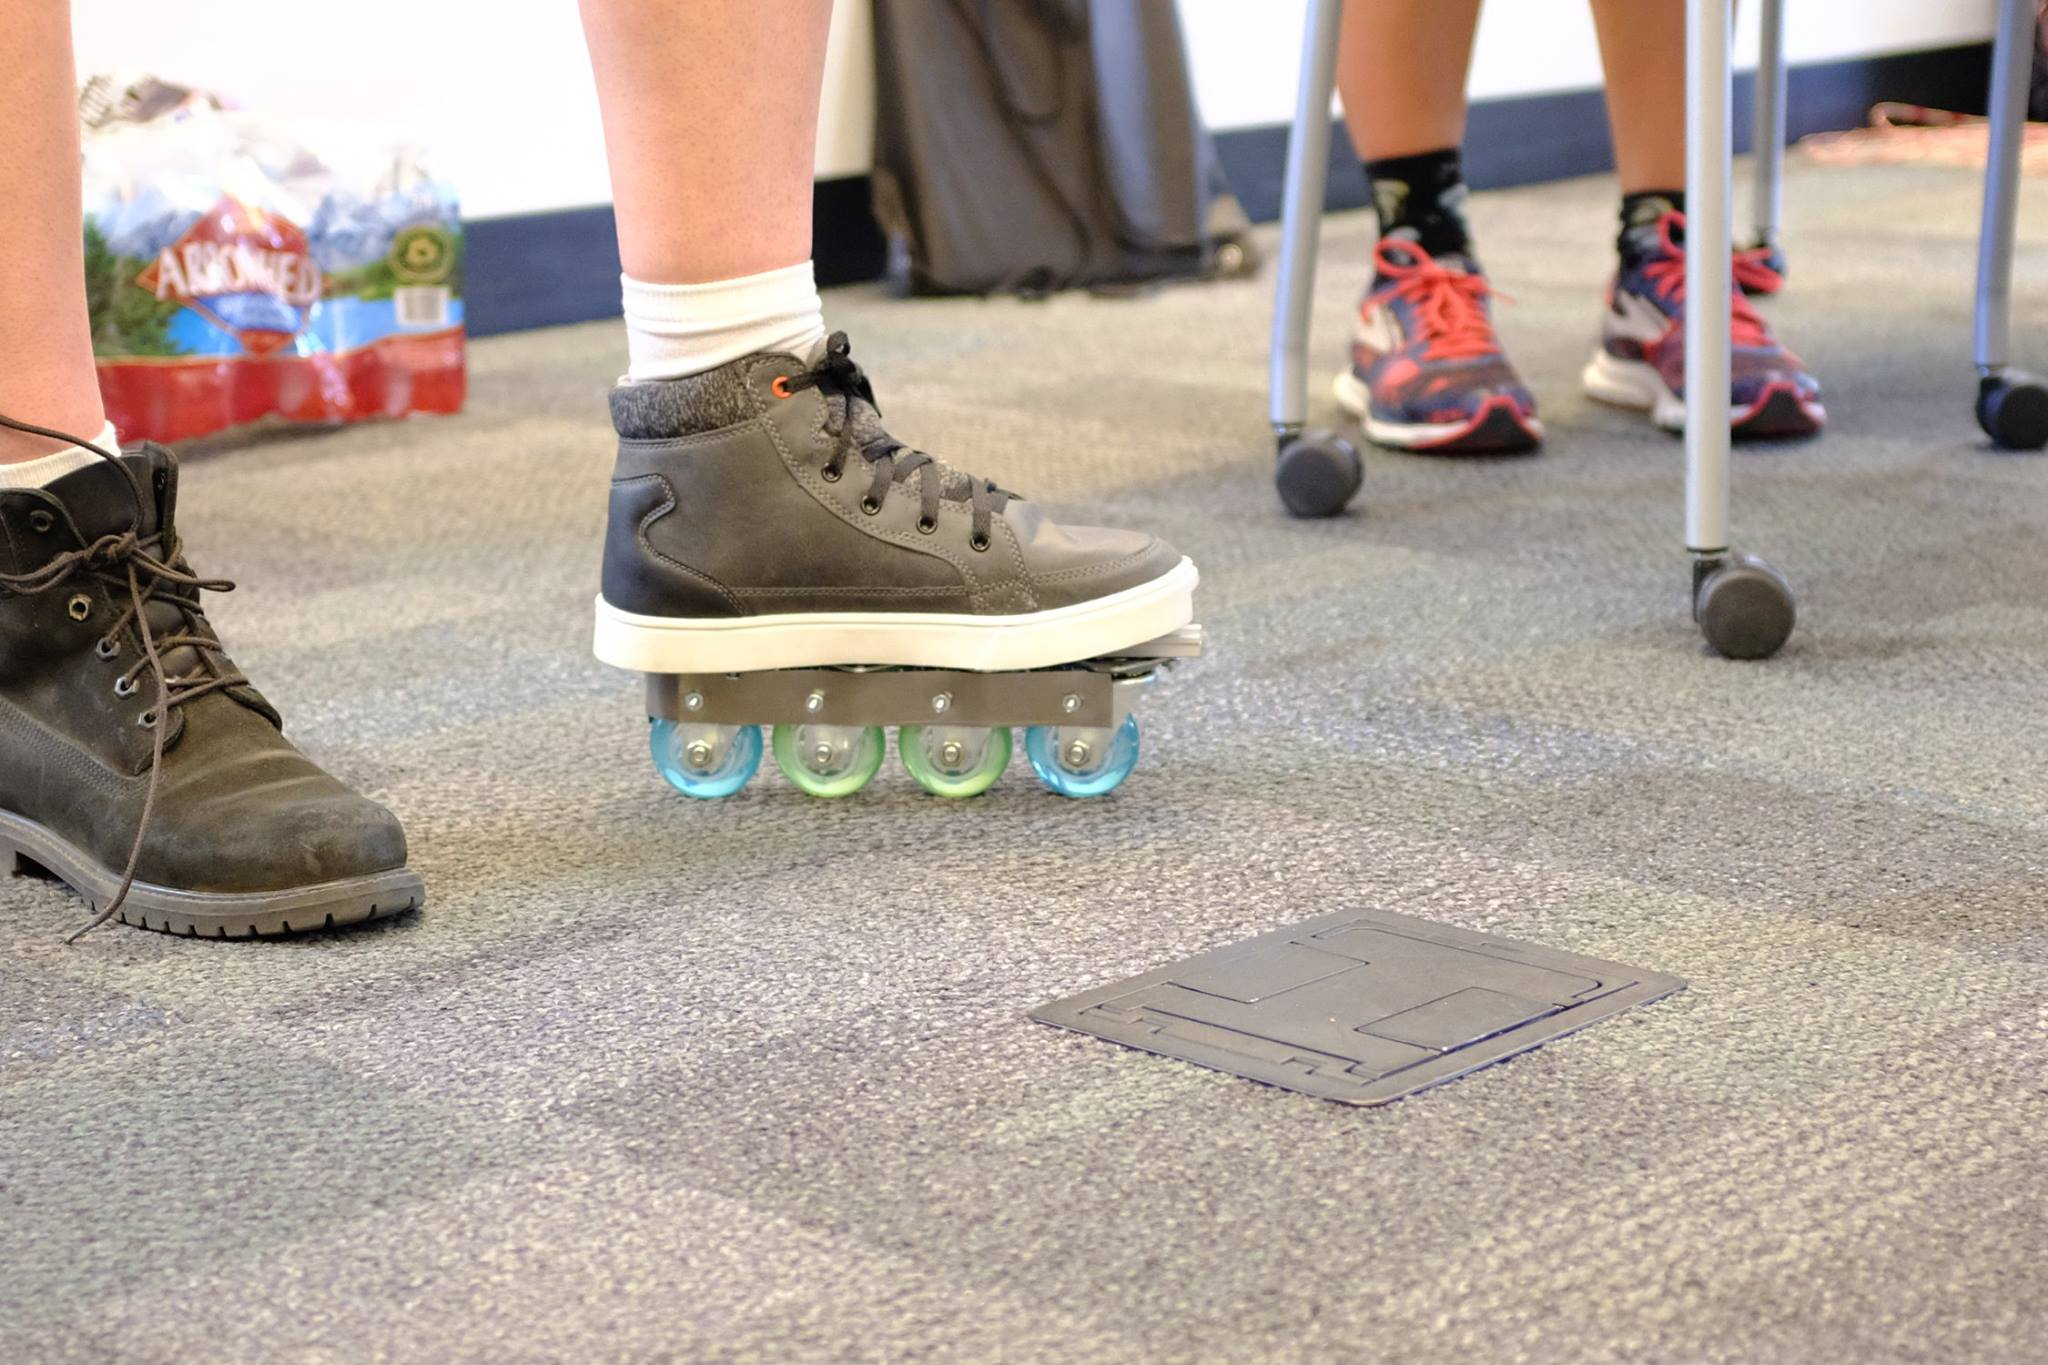 A close-up of the slip-on rollerblades, affixed to a student's shoe.